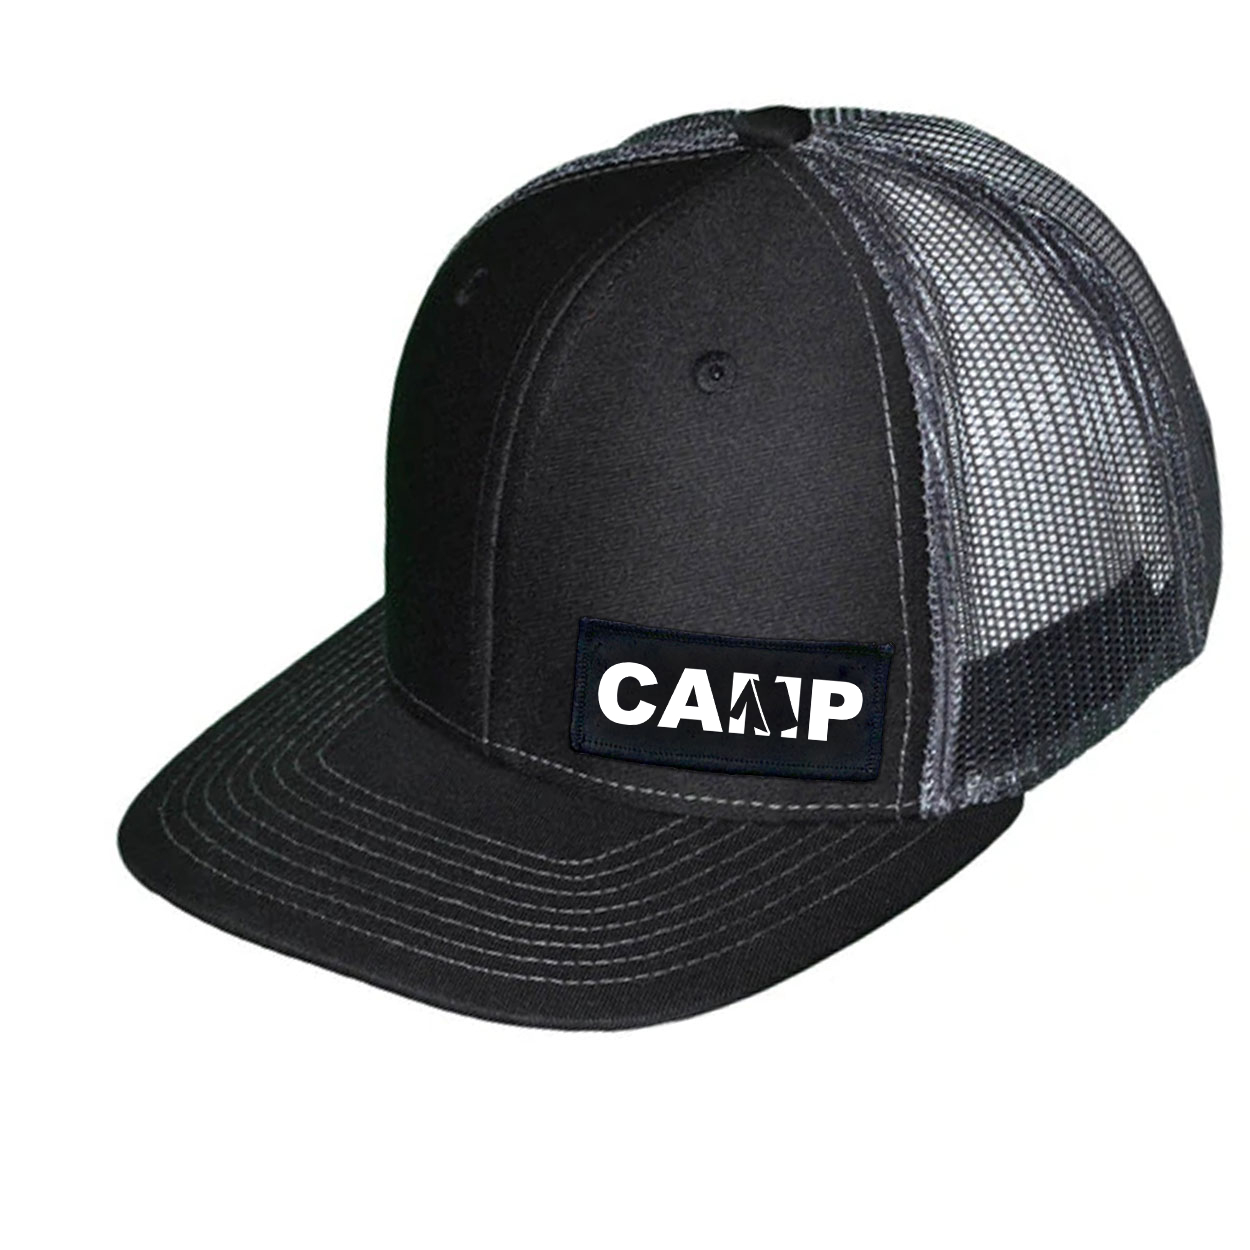 Camp Tent Logo Night Out Woven Patch Snapback Trucker Hat Black/Dark Gray (White Logo)